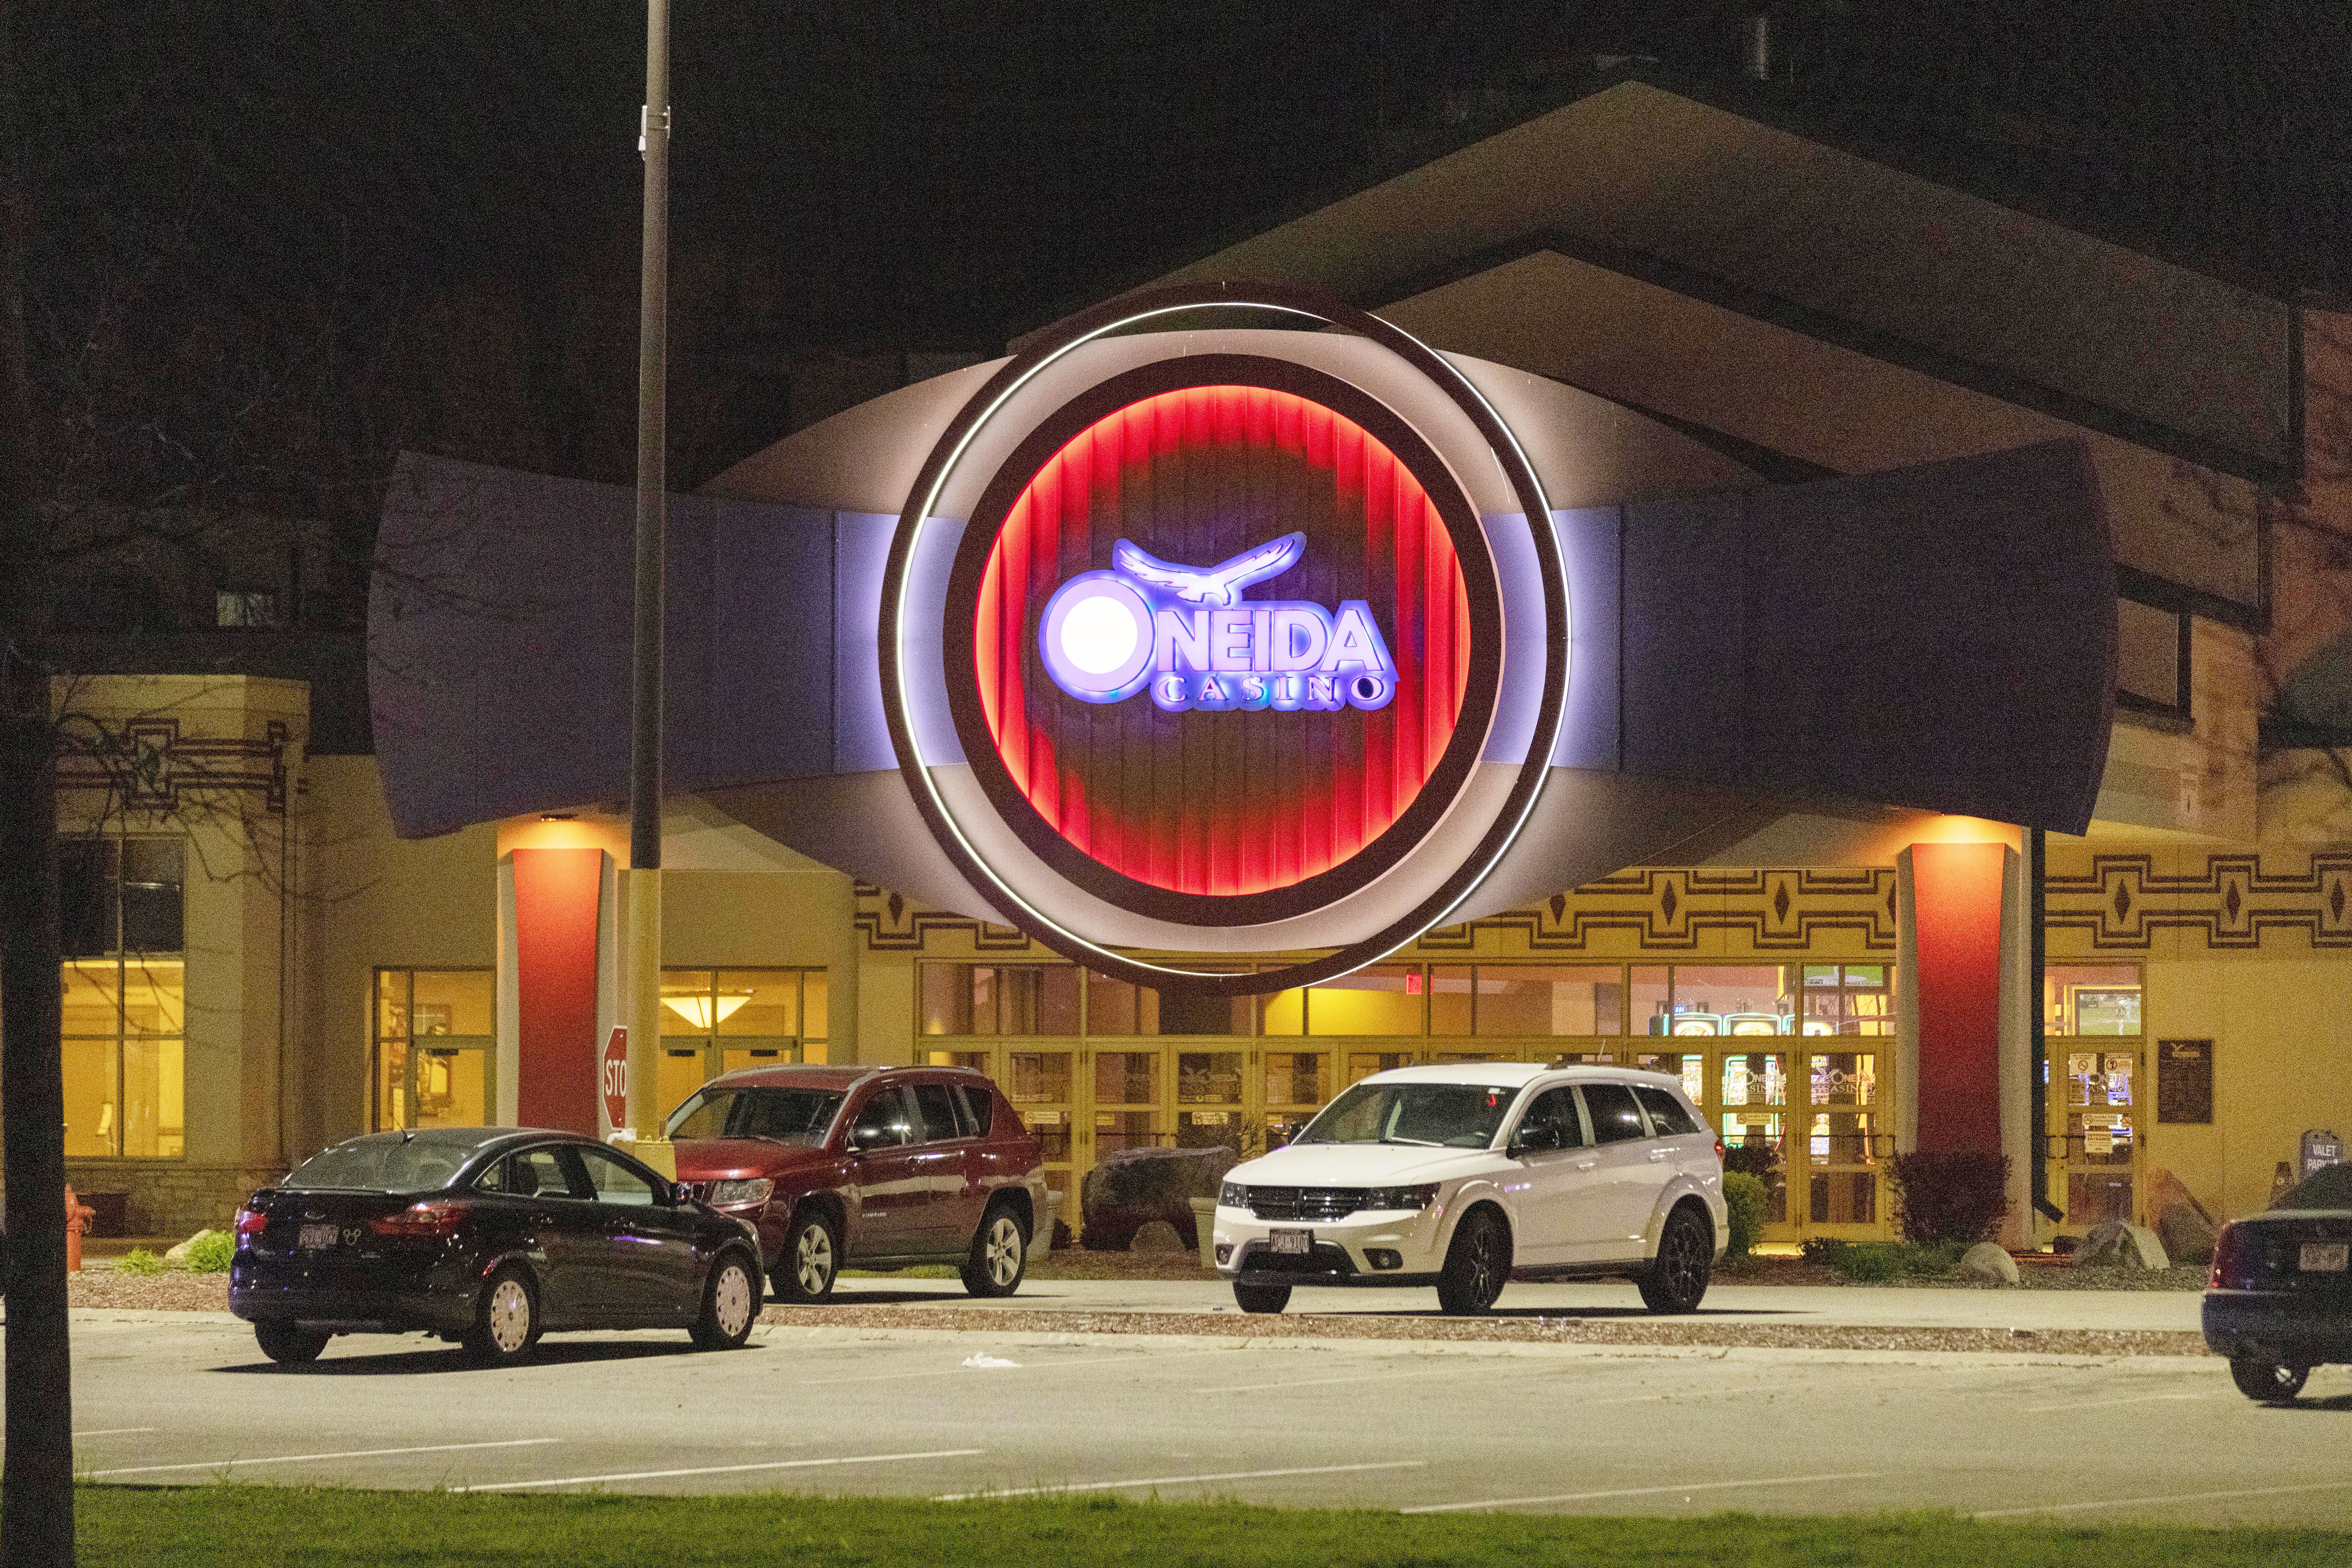 The Oneida Casino lights glow in the parking lot near Green Bay on May 2, 2021.